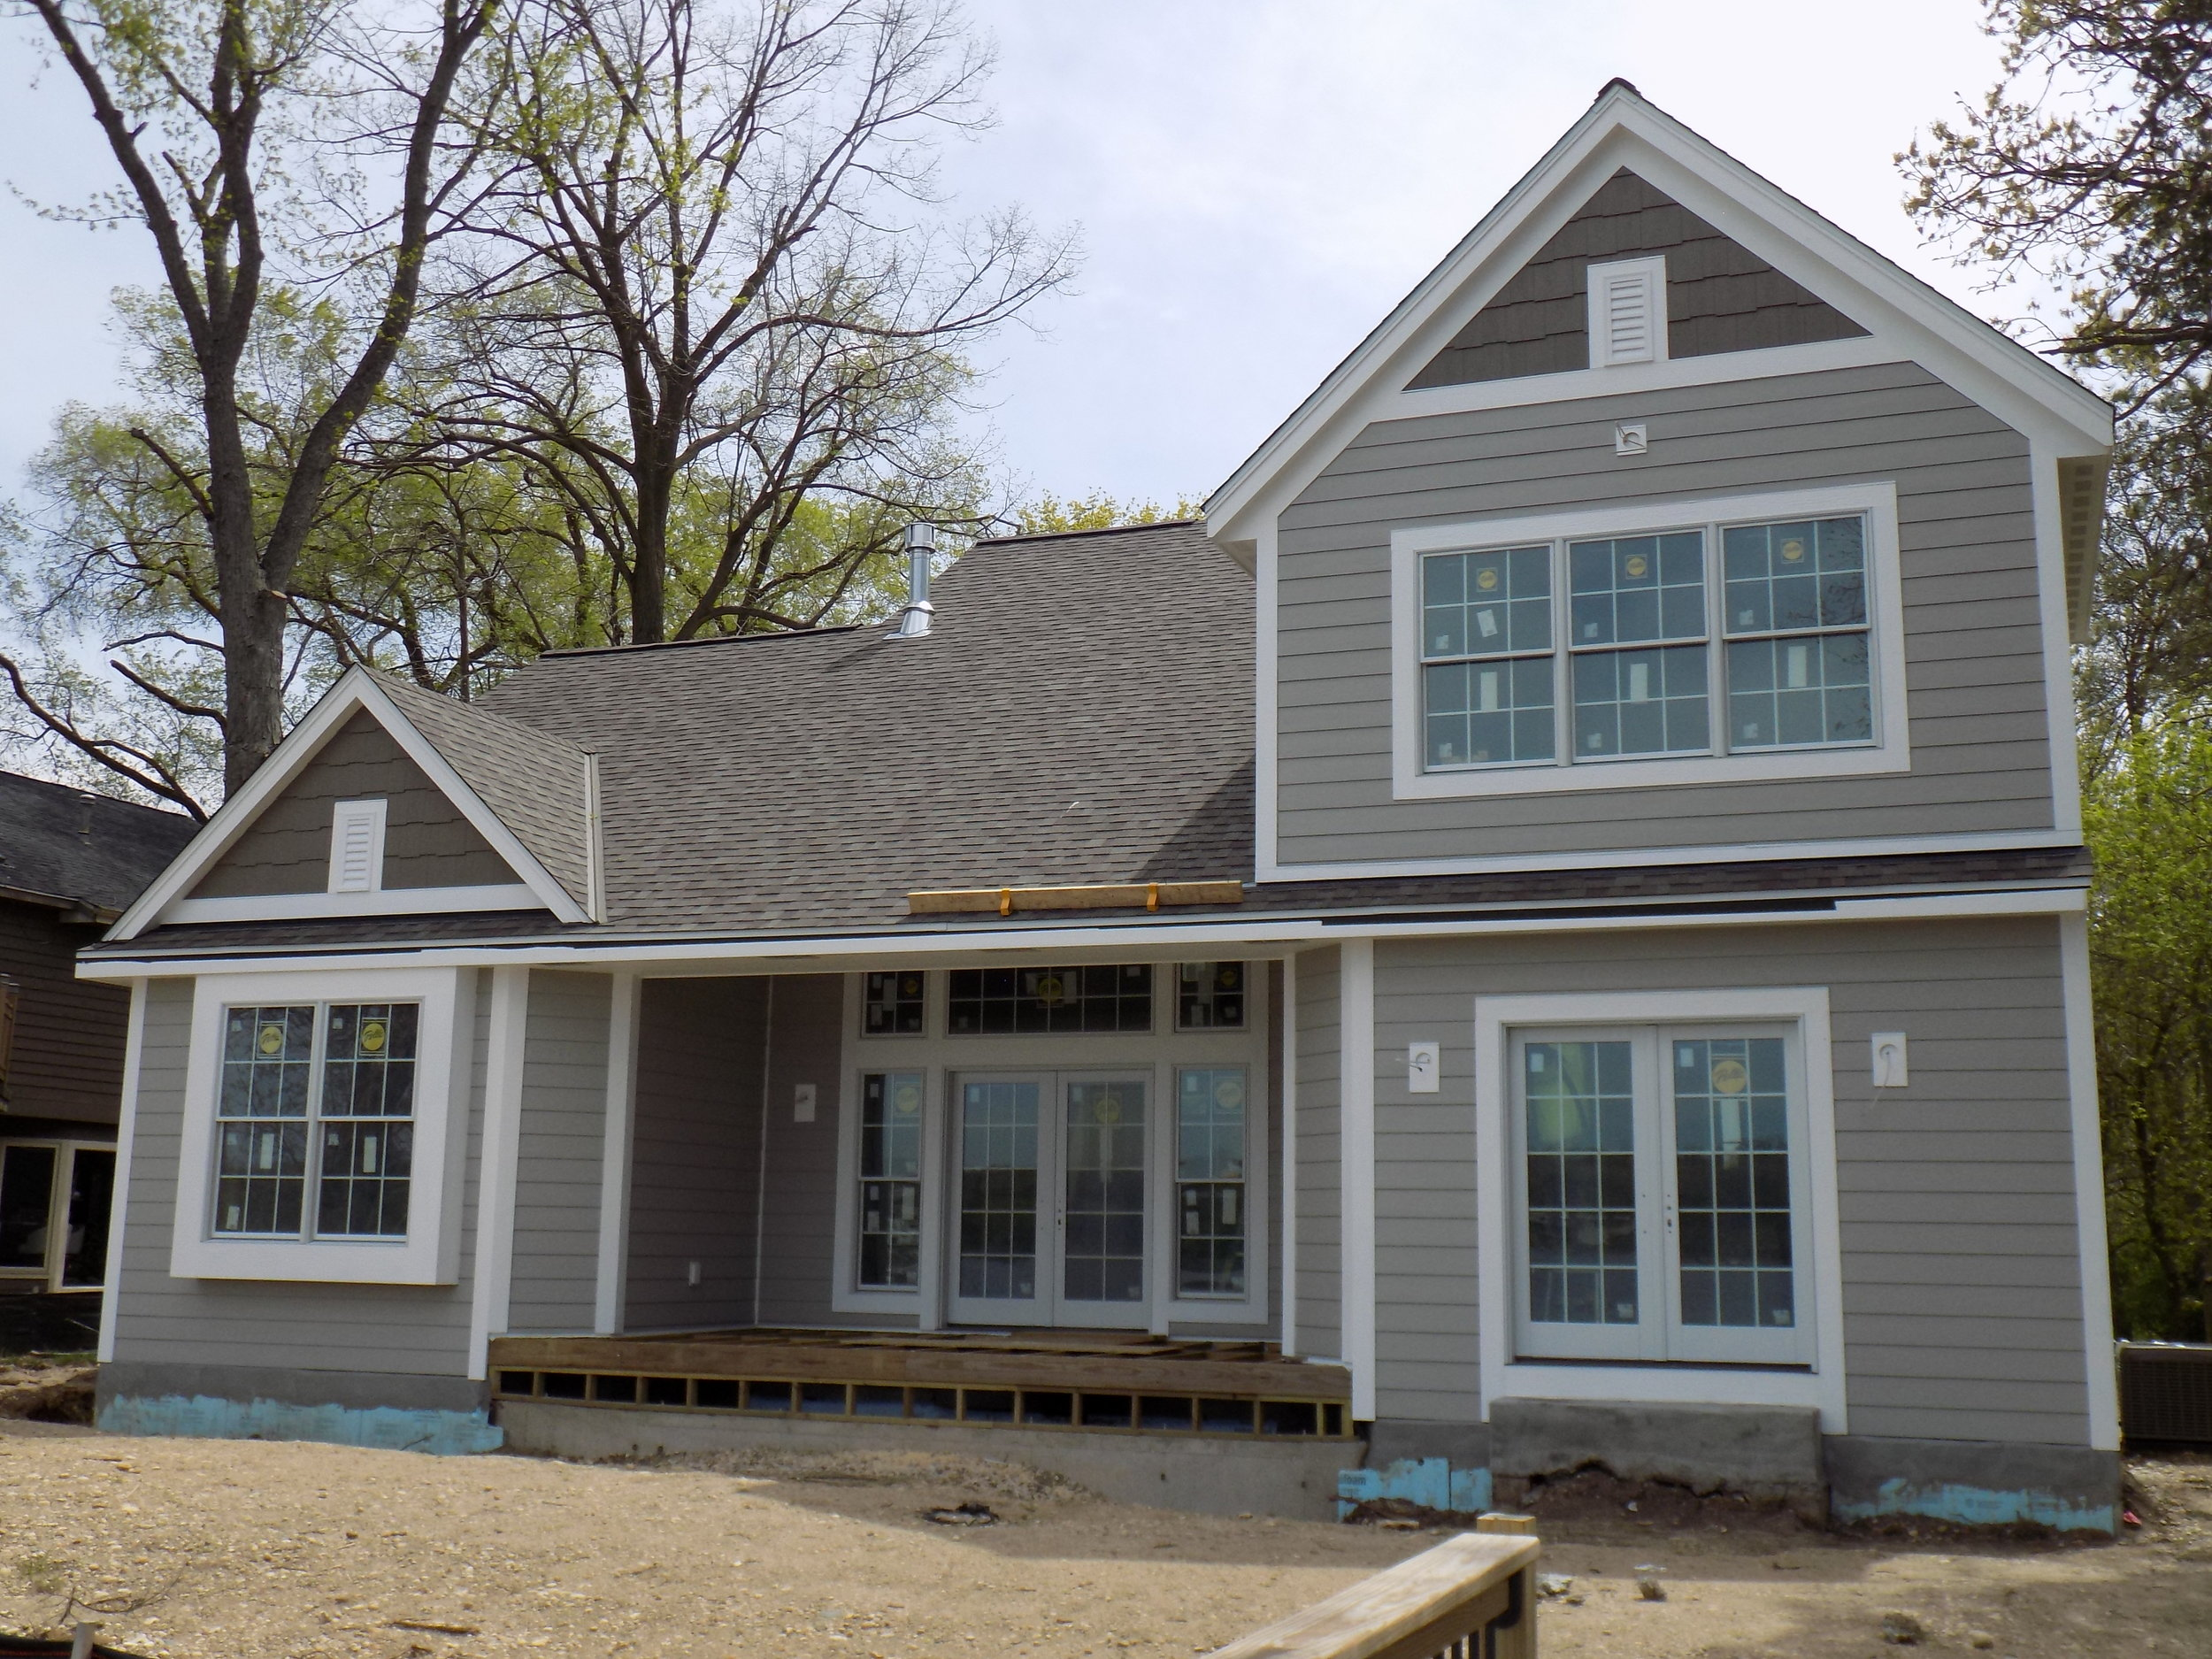 New Construction - find out more